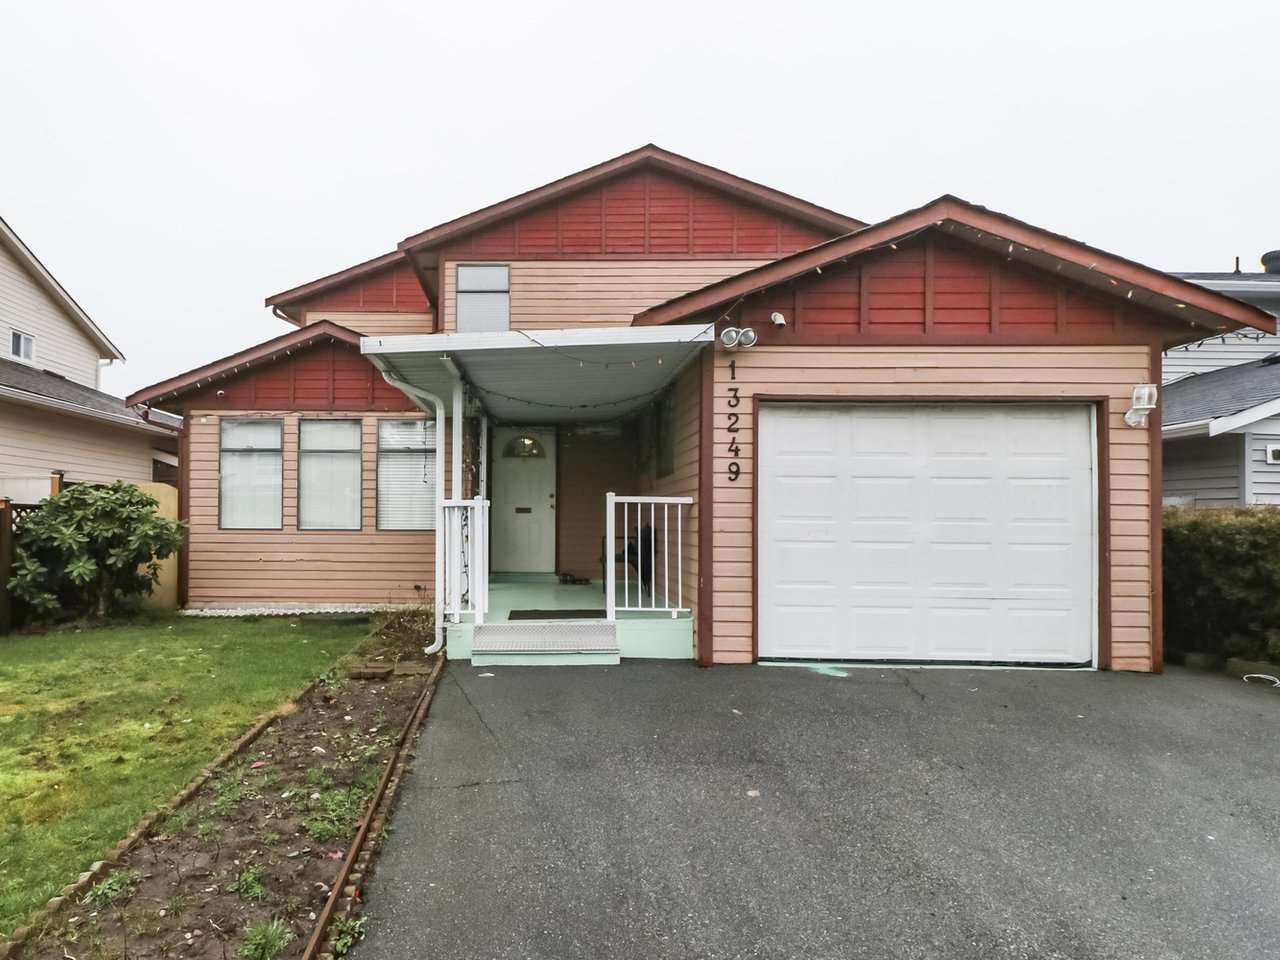 Main Photo: 13249 81A Avenue in Surrey: Queen Mary Park Surrey House for sale : MLS®# R2426727